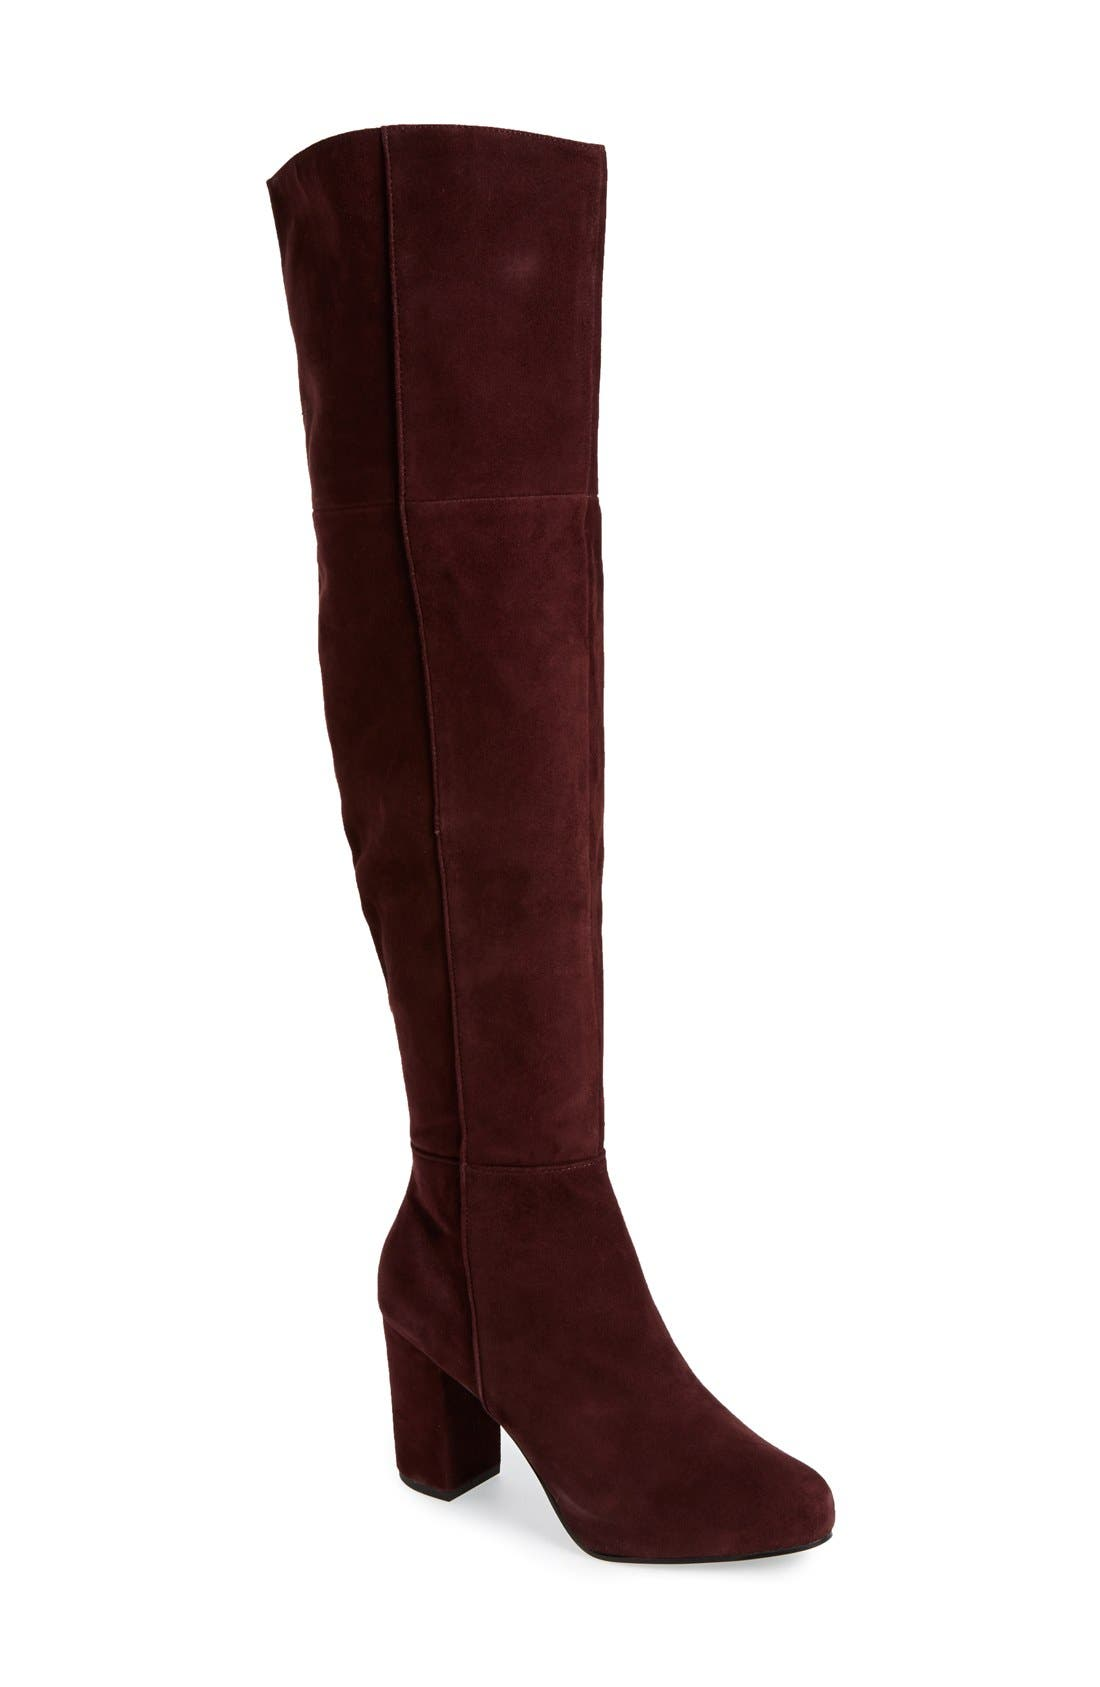 Main Image - Topshop 'Count' Over the Knee Boot (Women)